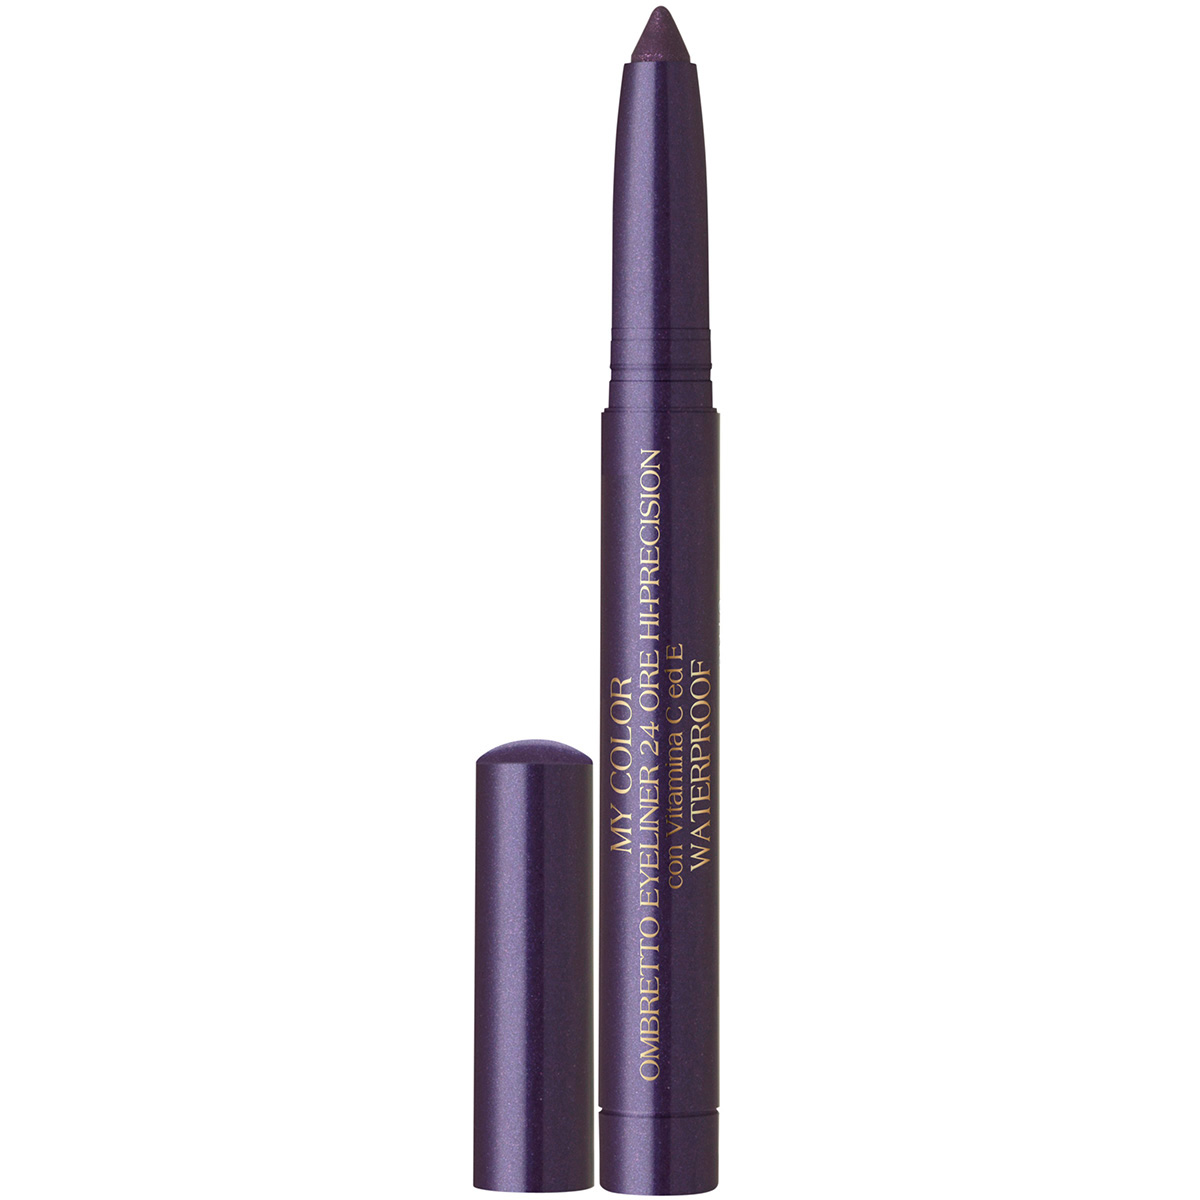 Fard de pleoape stick cu vitaminele C si E - waterproof, violet - My color